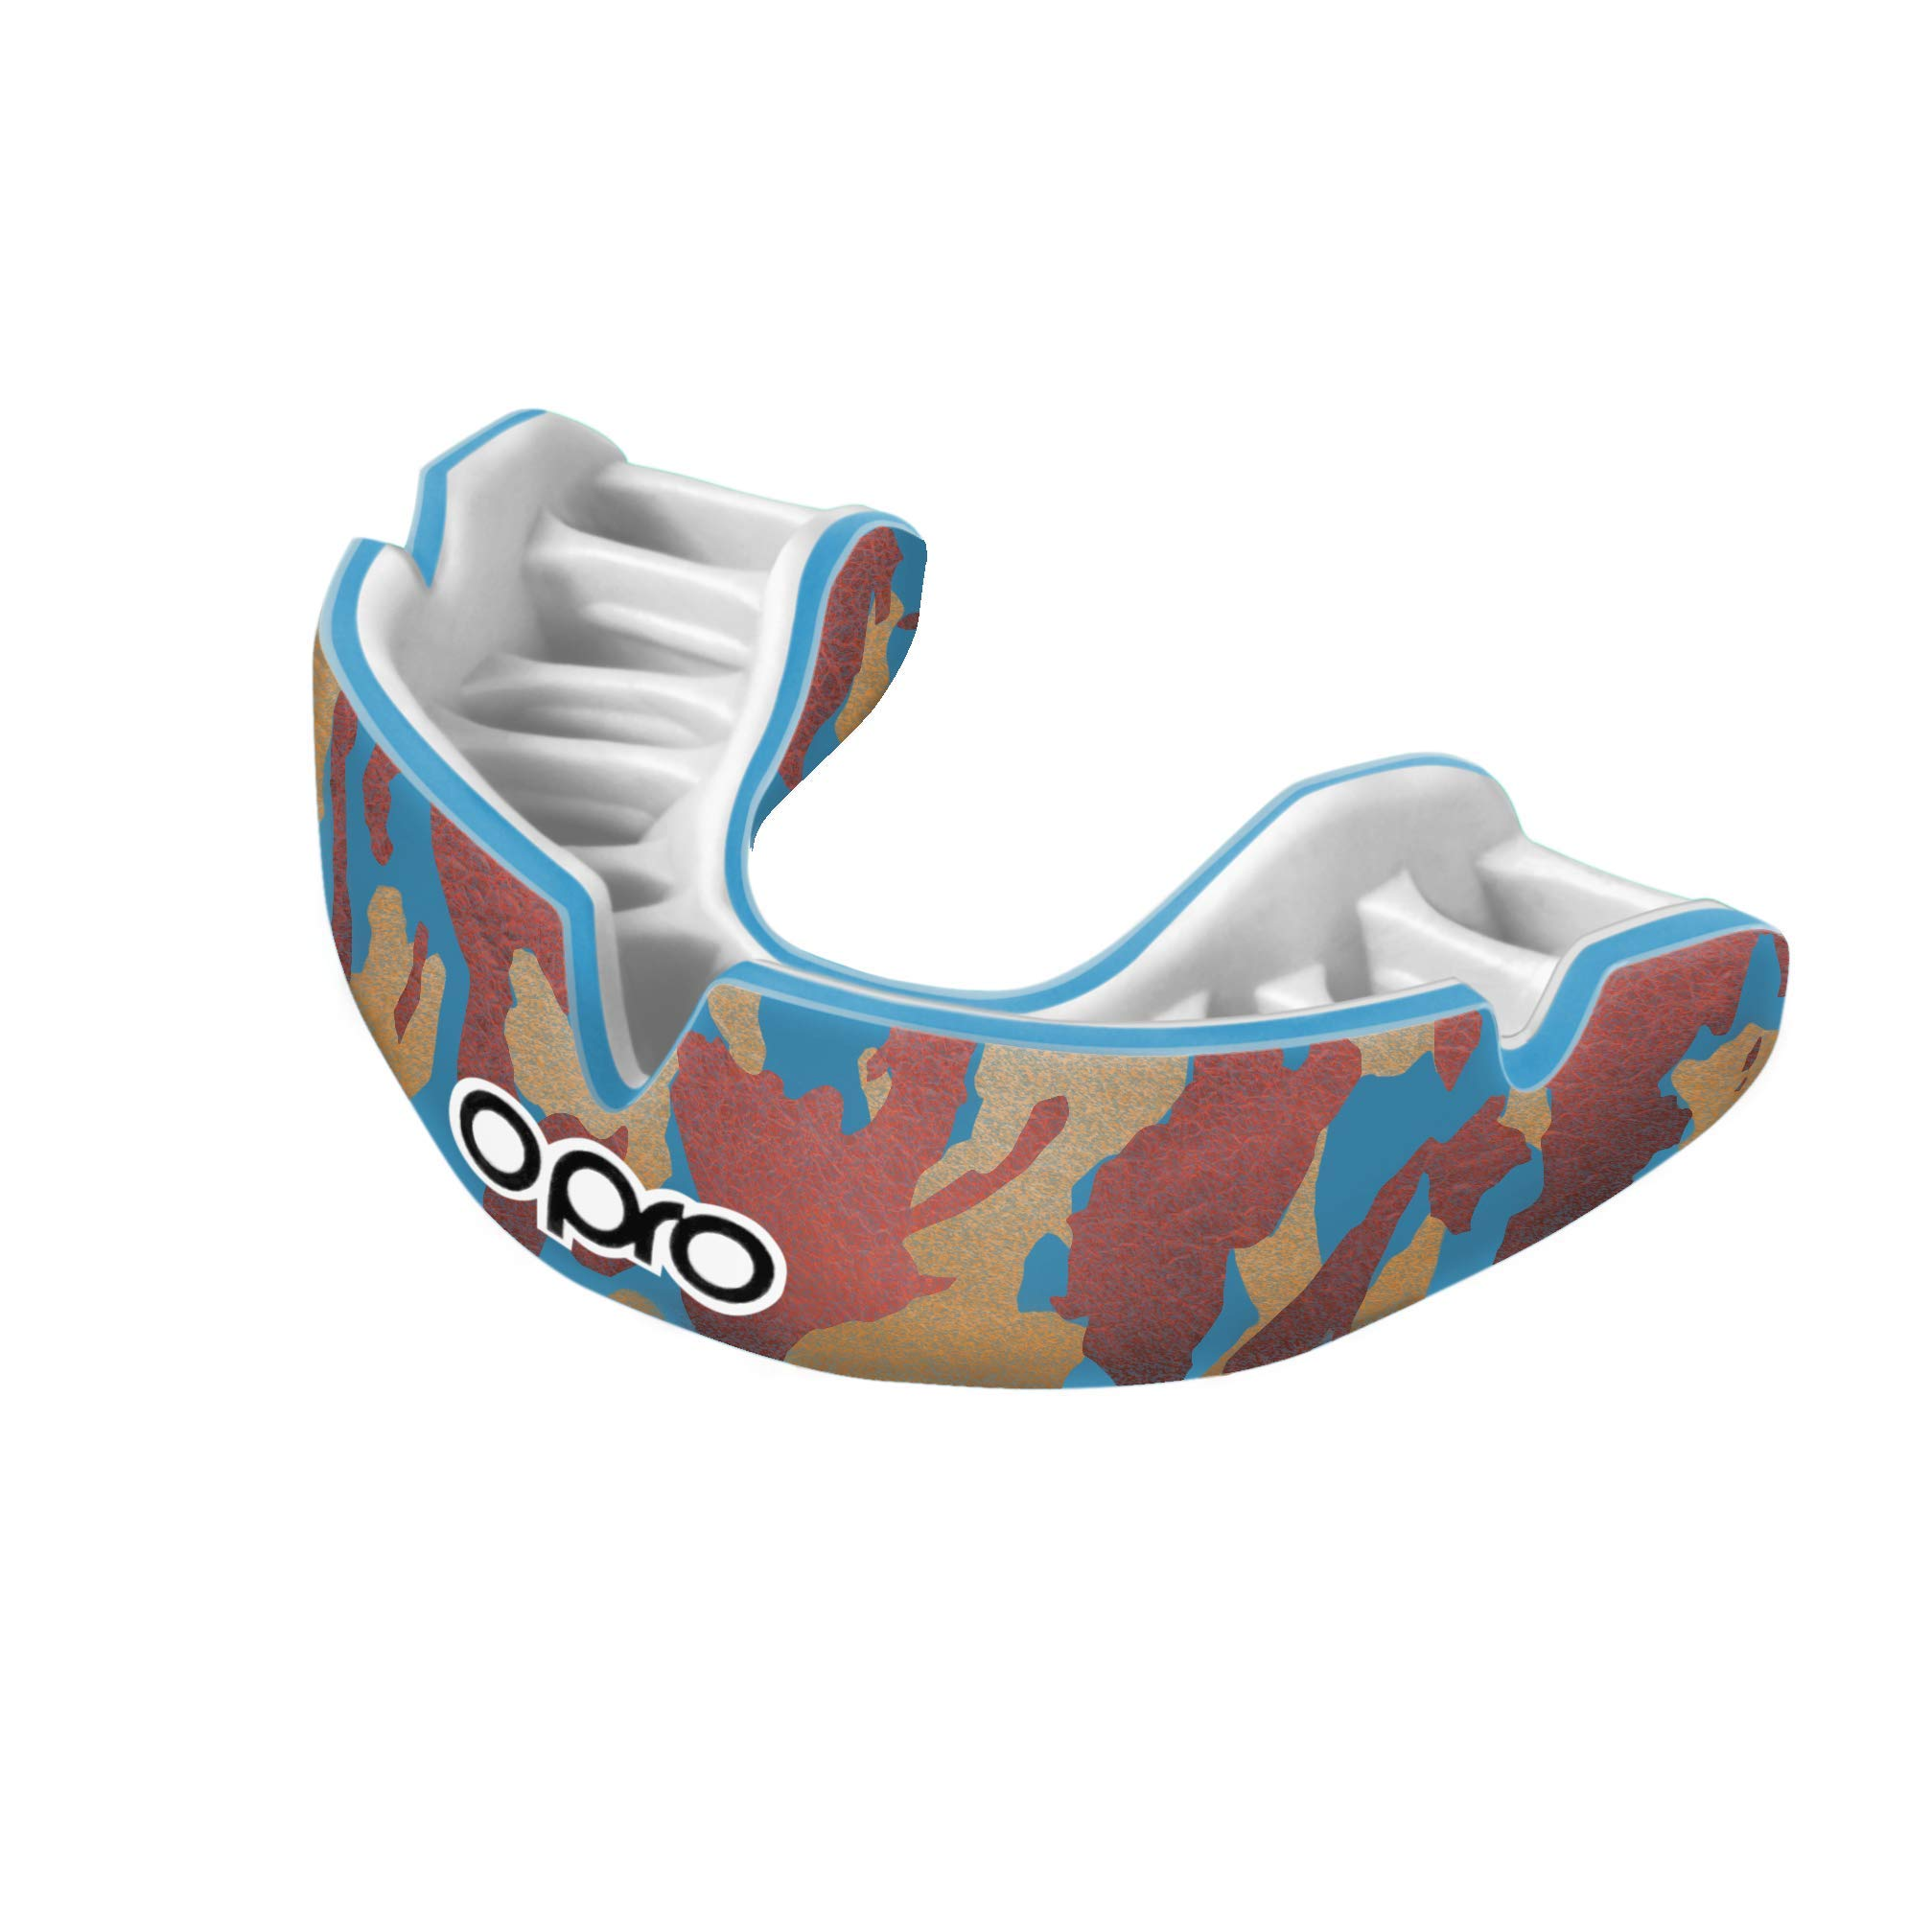 OPRO Power-Fit Mouthguard | Adult Handmade Gum Shield for Football, Rugby, Hockey, Wrestling, and Other Combat and Contact Sports - 18 Month Dental Warranty (Ages 10+) (Camo - Blue/Orange/Gold)